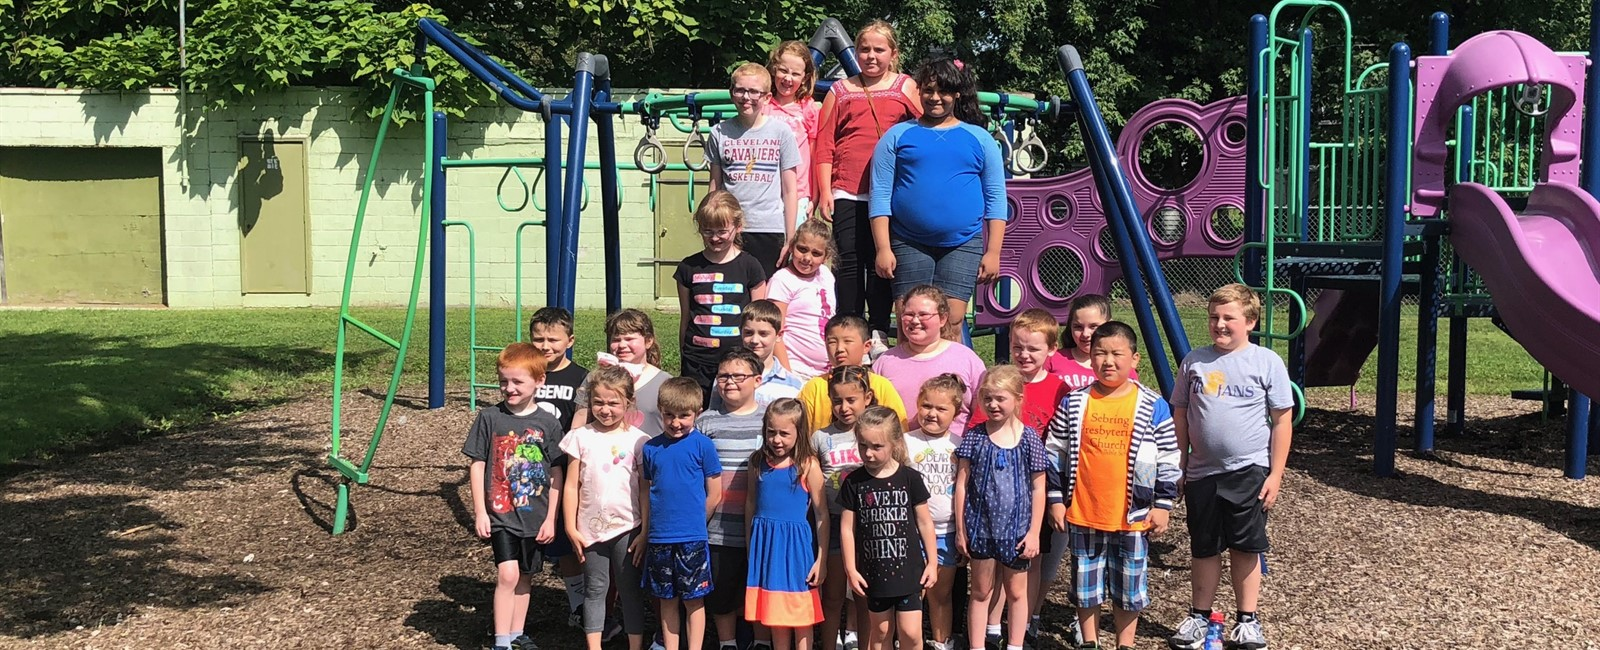 Twenty four elementary students were rewarded with an afternoon at the park for meeting their summer reading challenge.